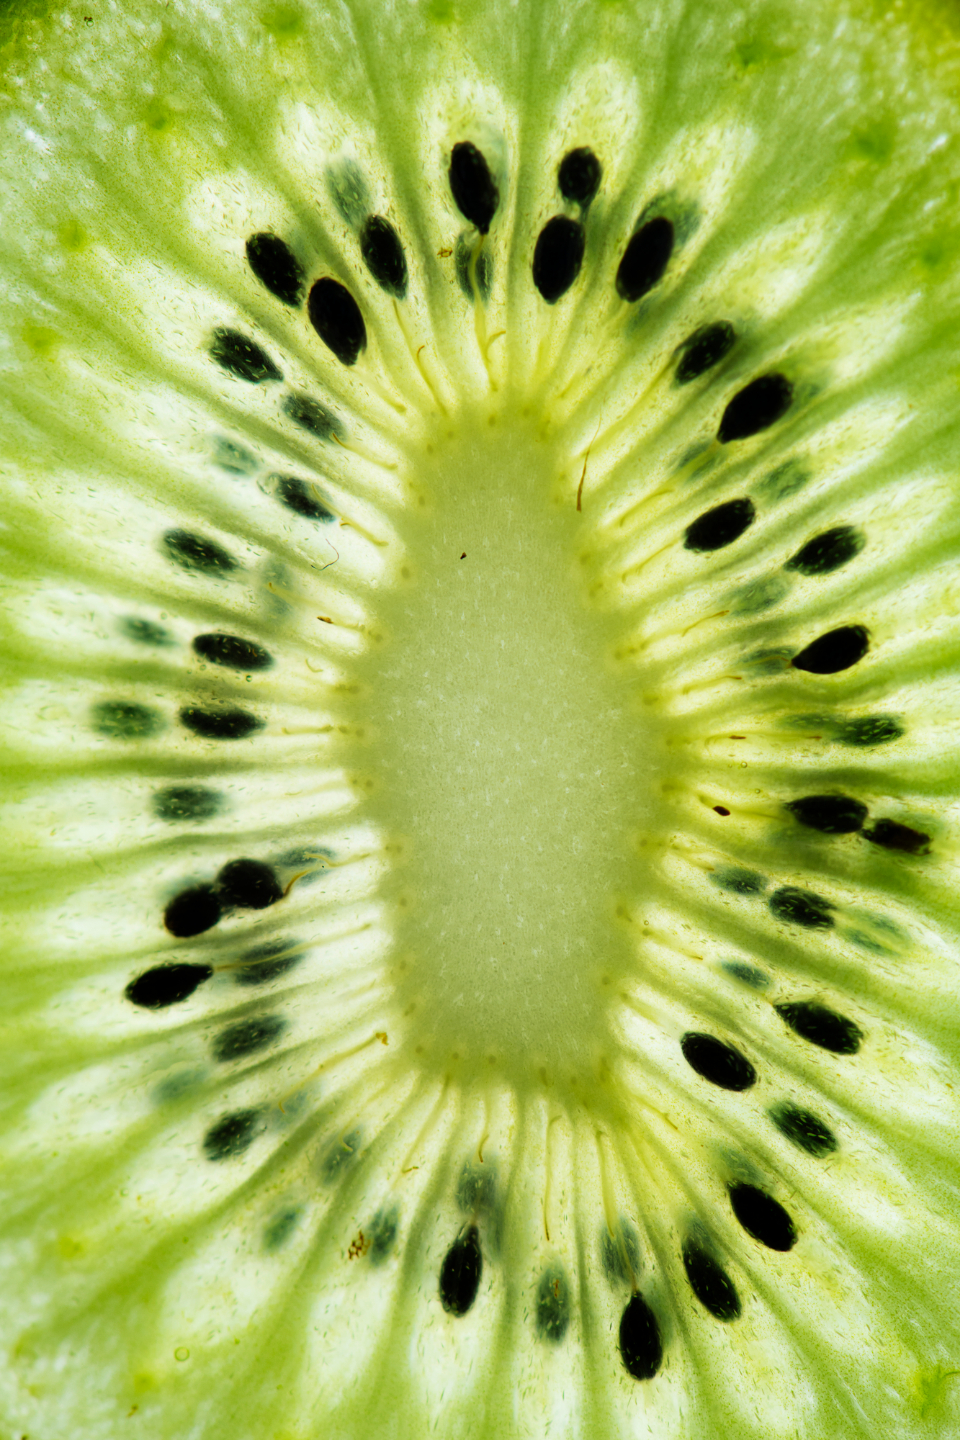 delicious fresh fruit fruity green health healthful healthy ingredient juicy kiwi kiwi closeup kiwi fruit kiwi macro kiwi slice kiwifruit macro natural nature nutrition nutritious organic pattern raw refreshi